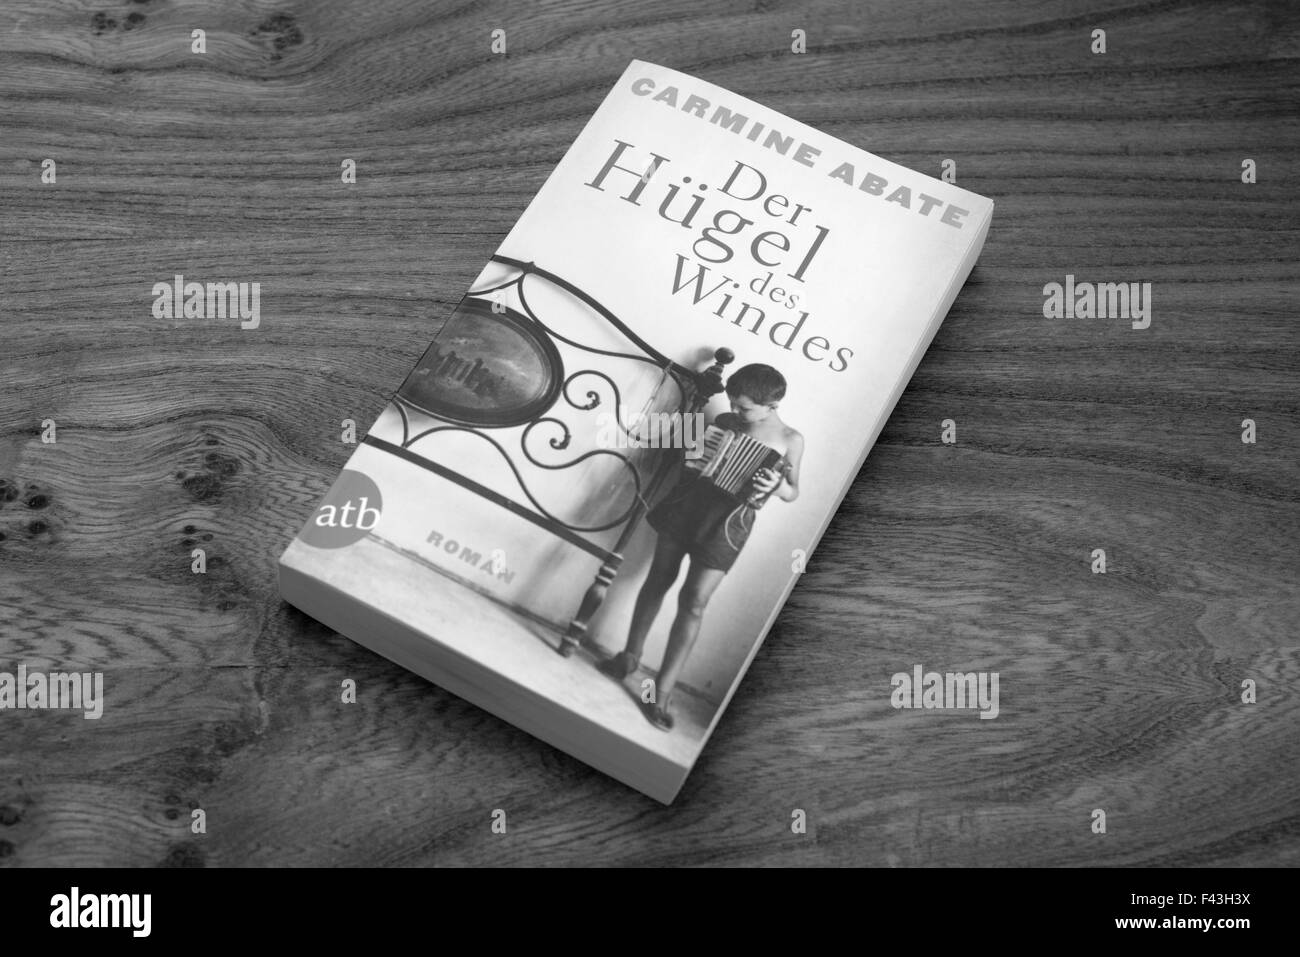 Carmine Abate Der Hugel des Windes paperback book Stock Photo